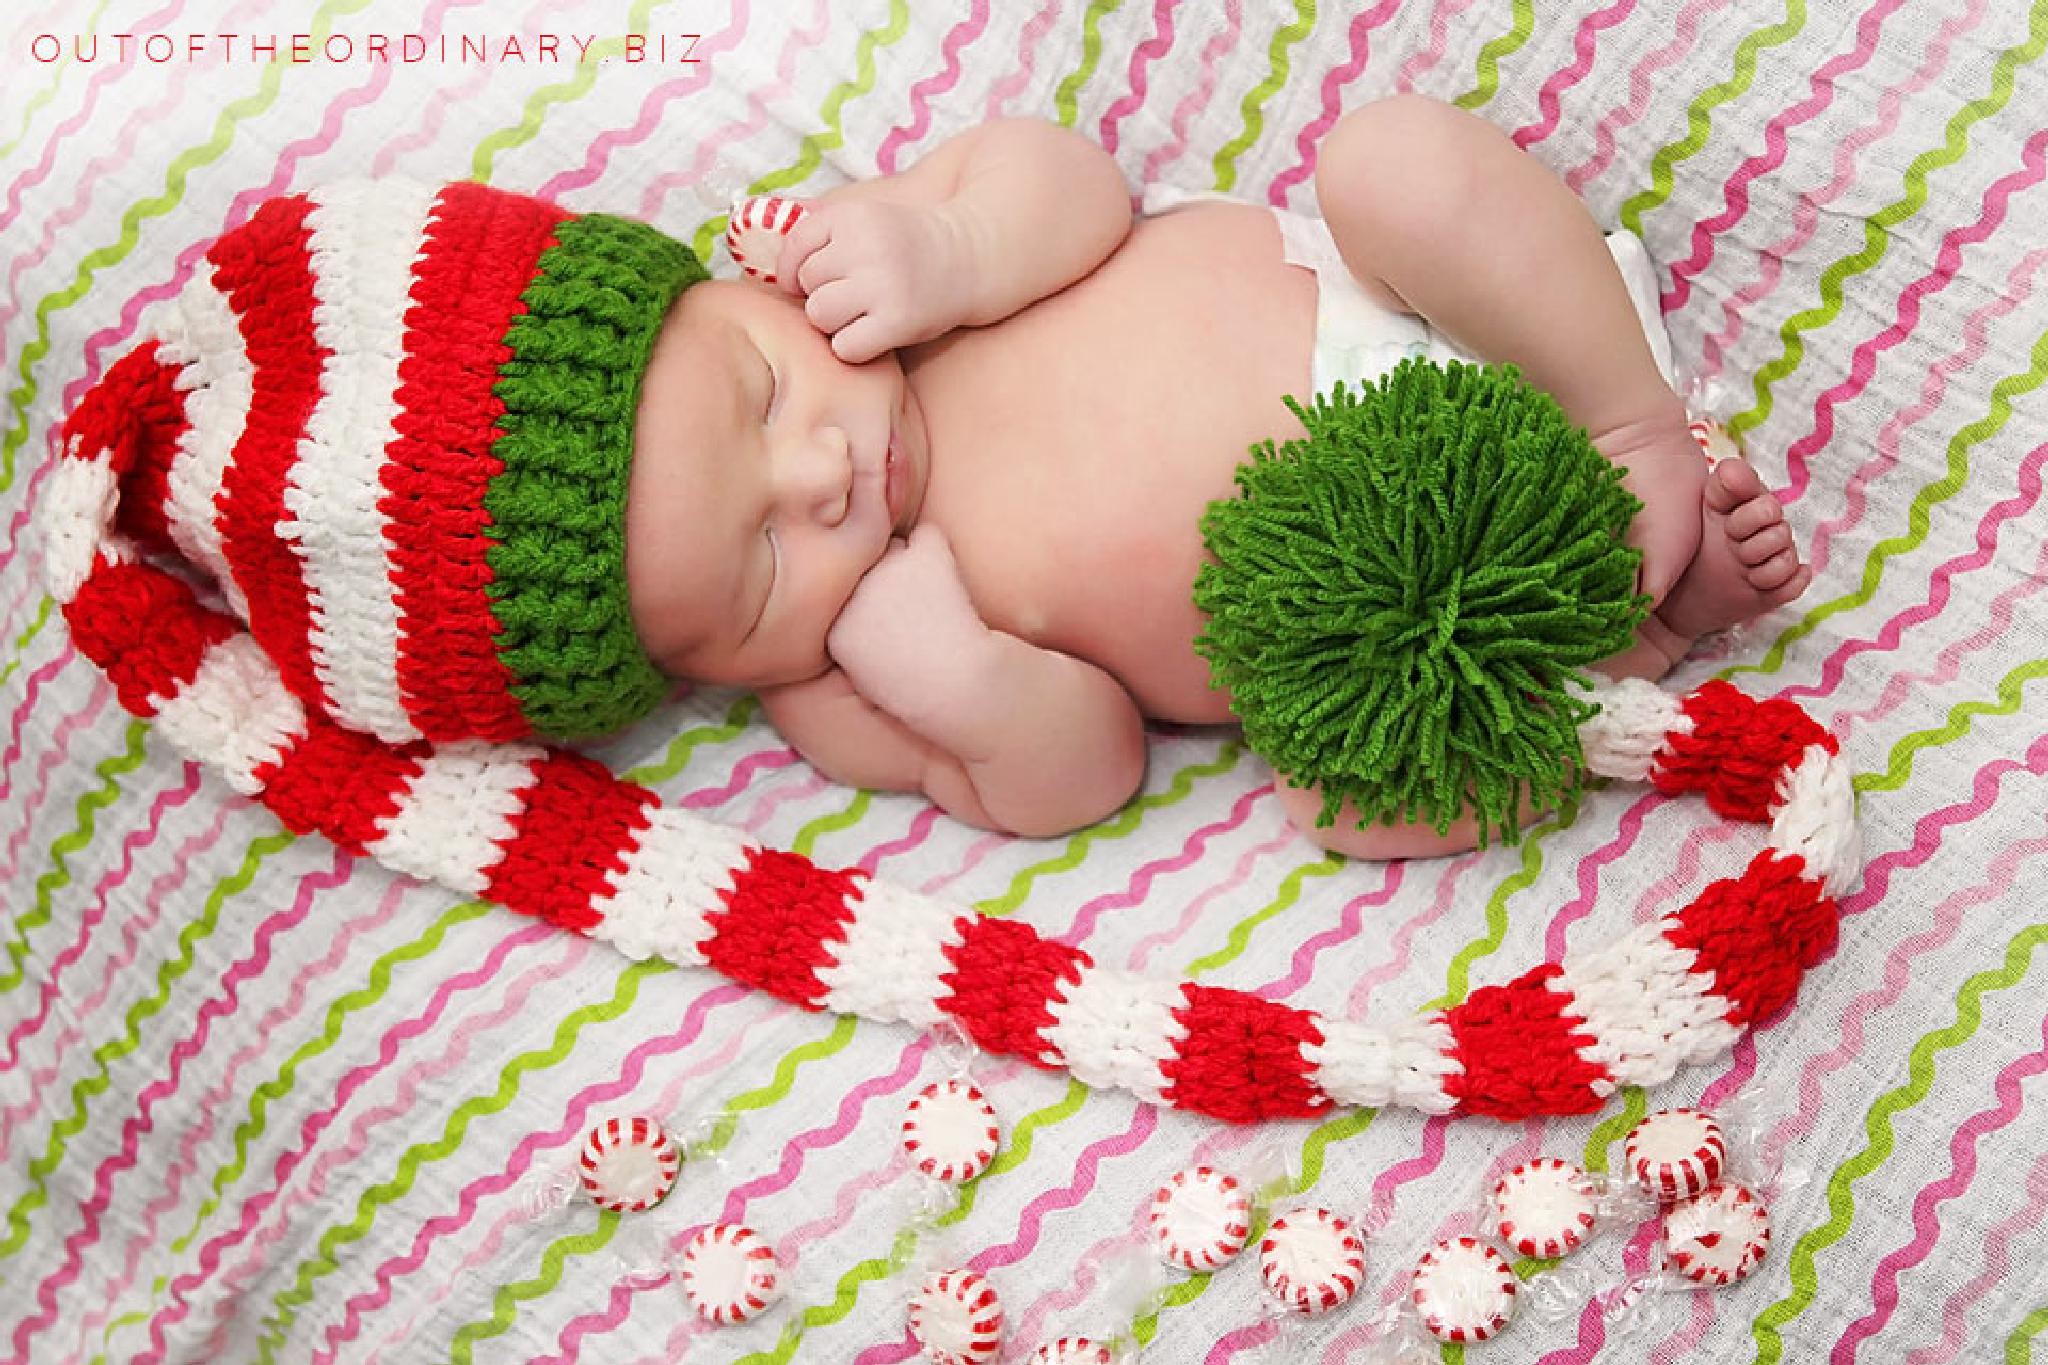 Photo in Portrait #baby #newborn #infant #session #july #christmas #hat #holiday #cute #suess #puff ball #candy #peppermint #outoftheordinary.biz #out of the ordinary #photography #holly greene